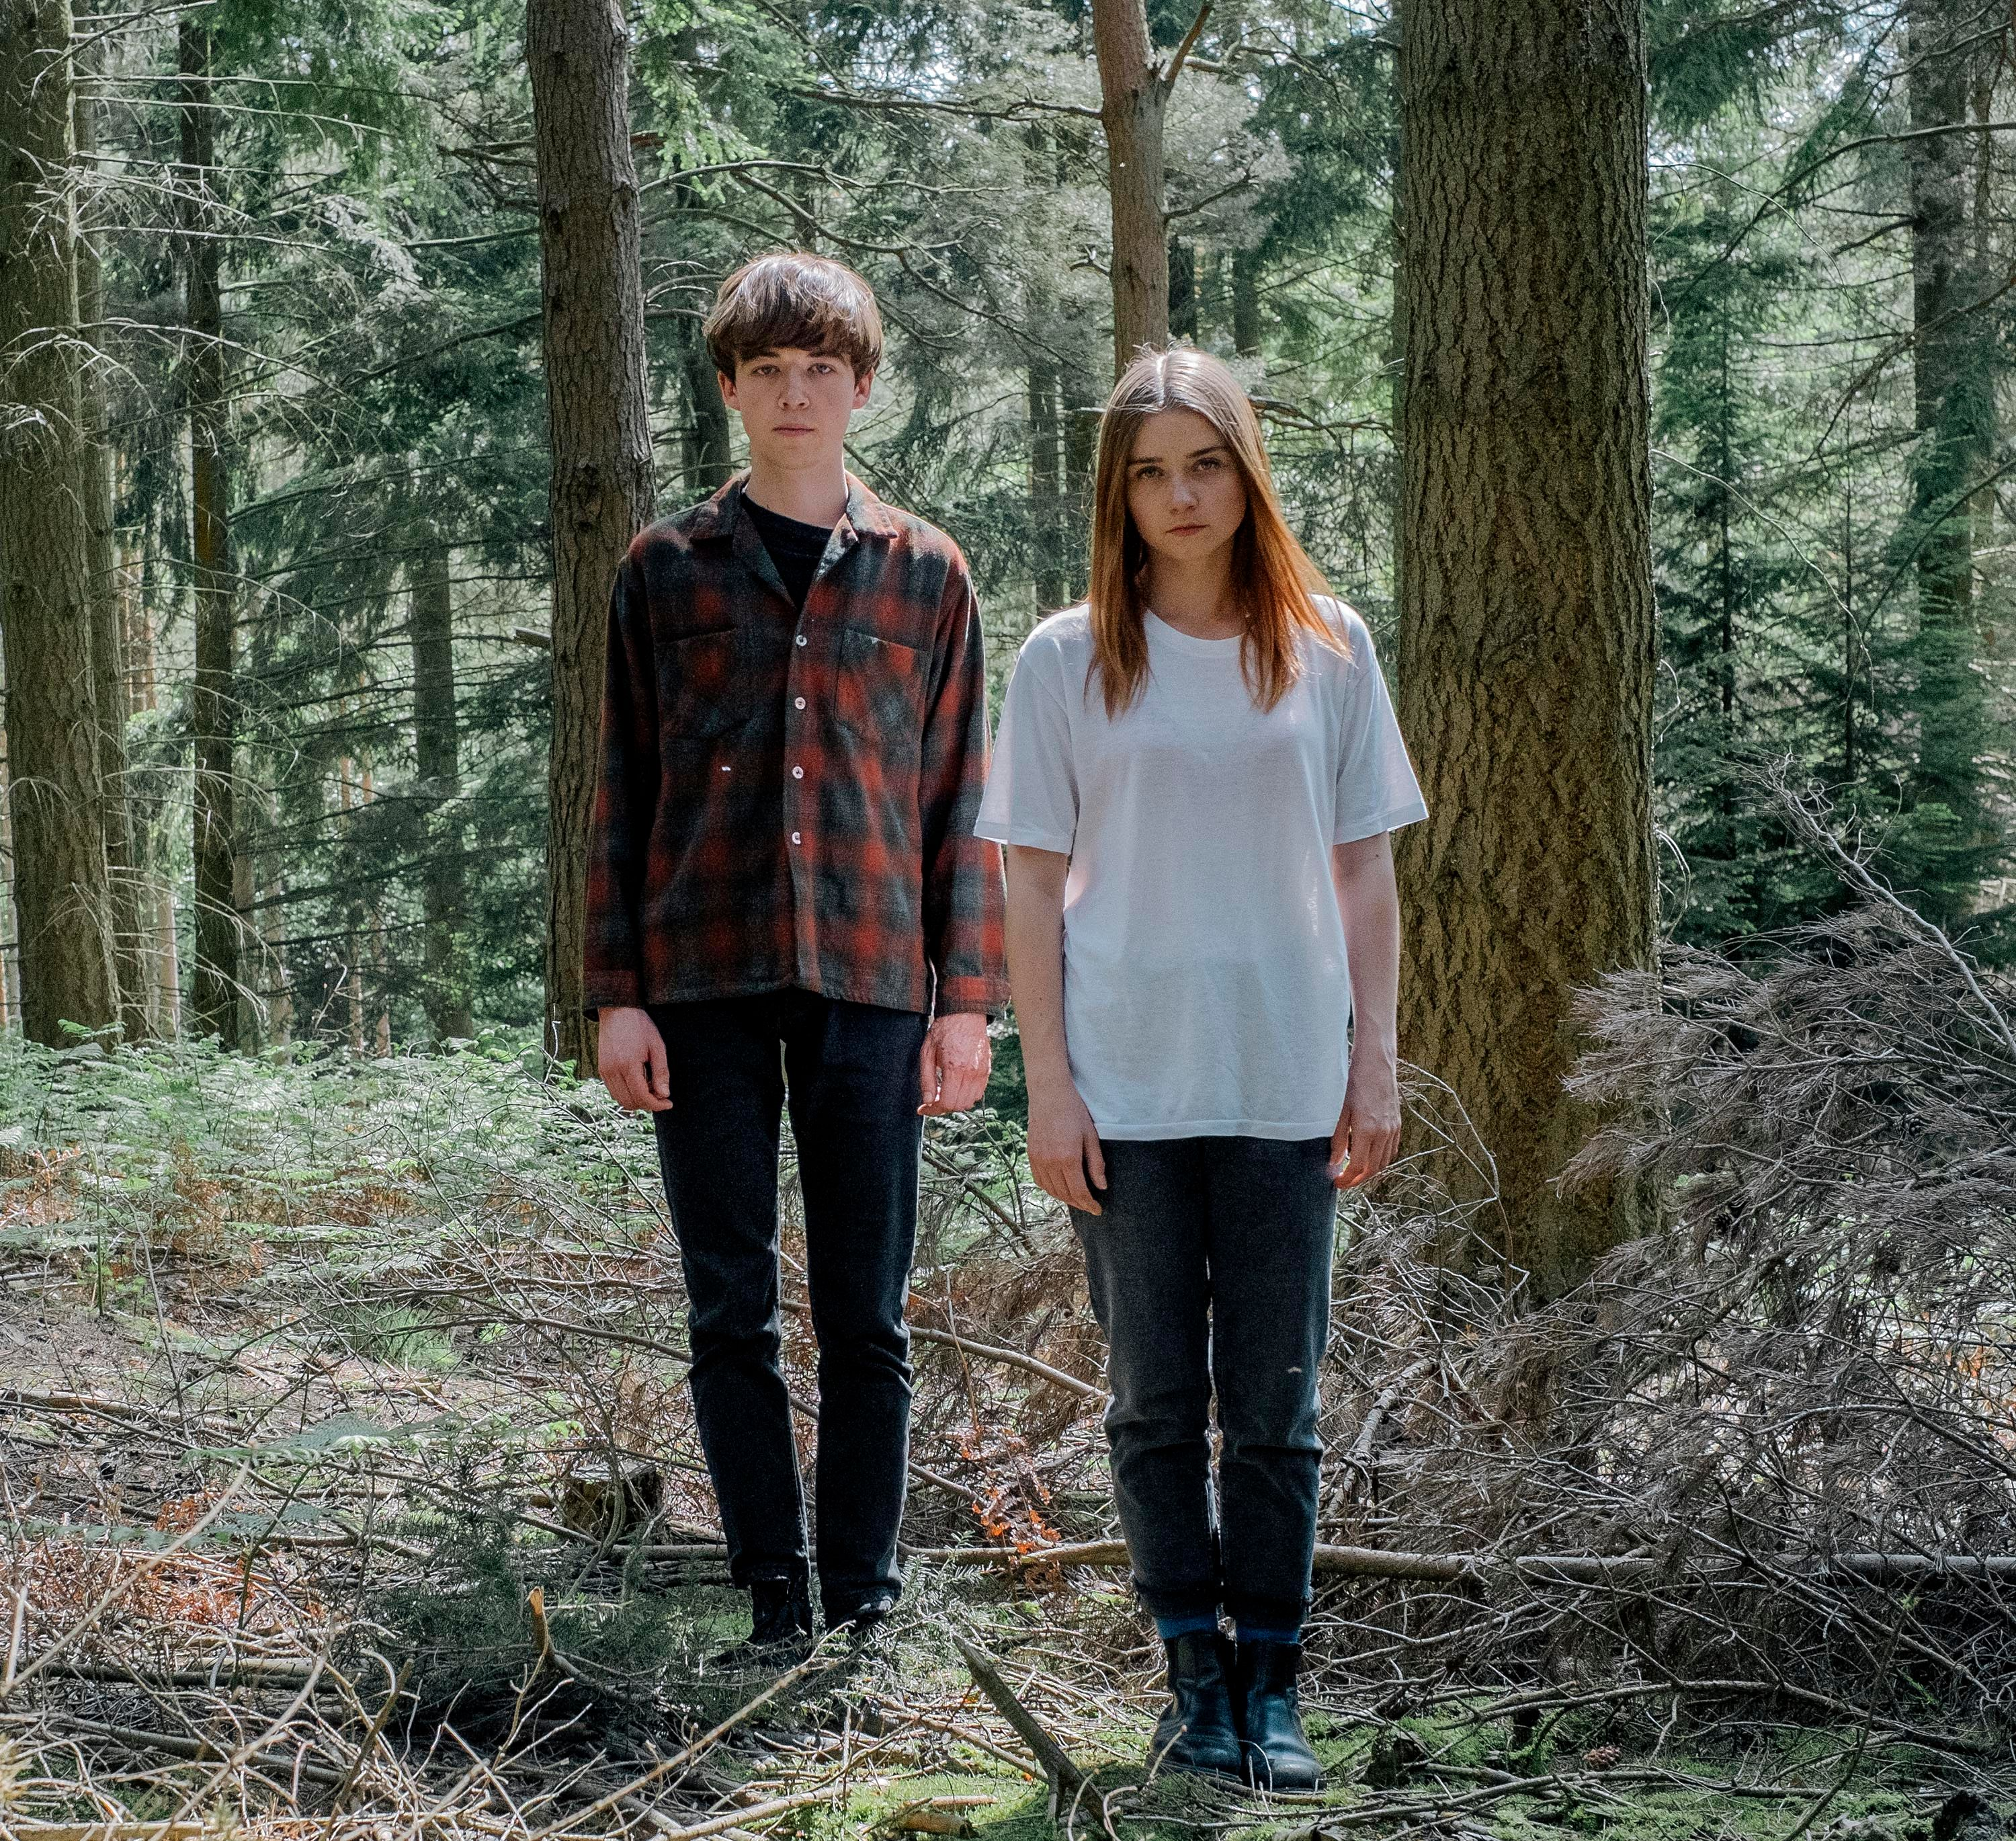 The End Of The F***ing World: - Stars Alex Lawther as James and Jessica Barden as Alyssa.